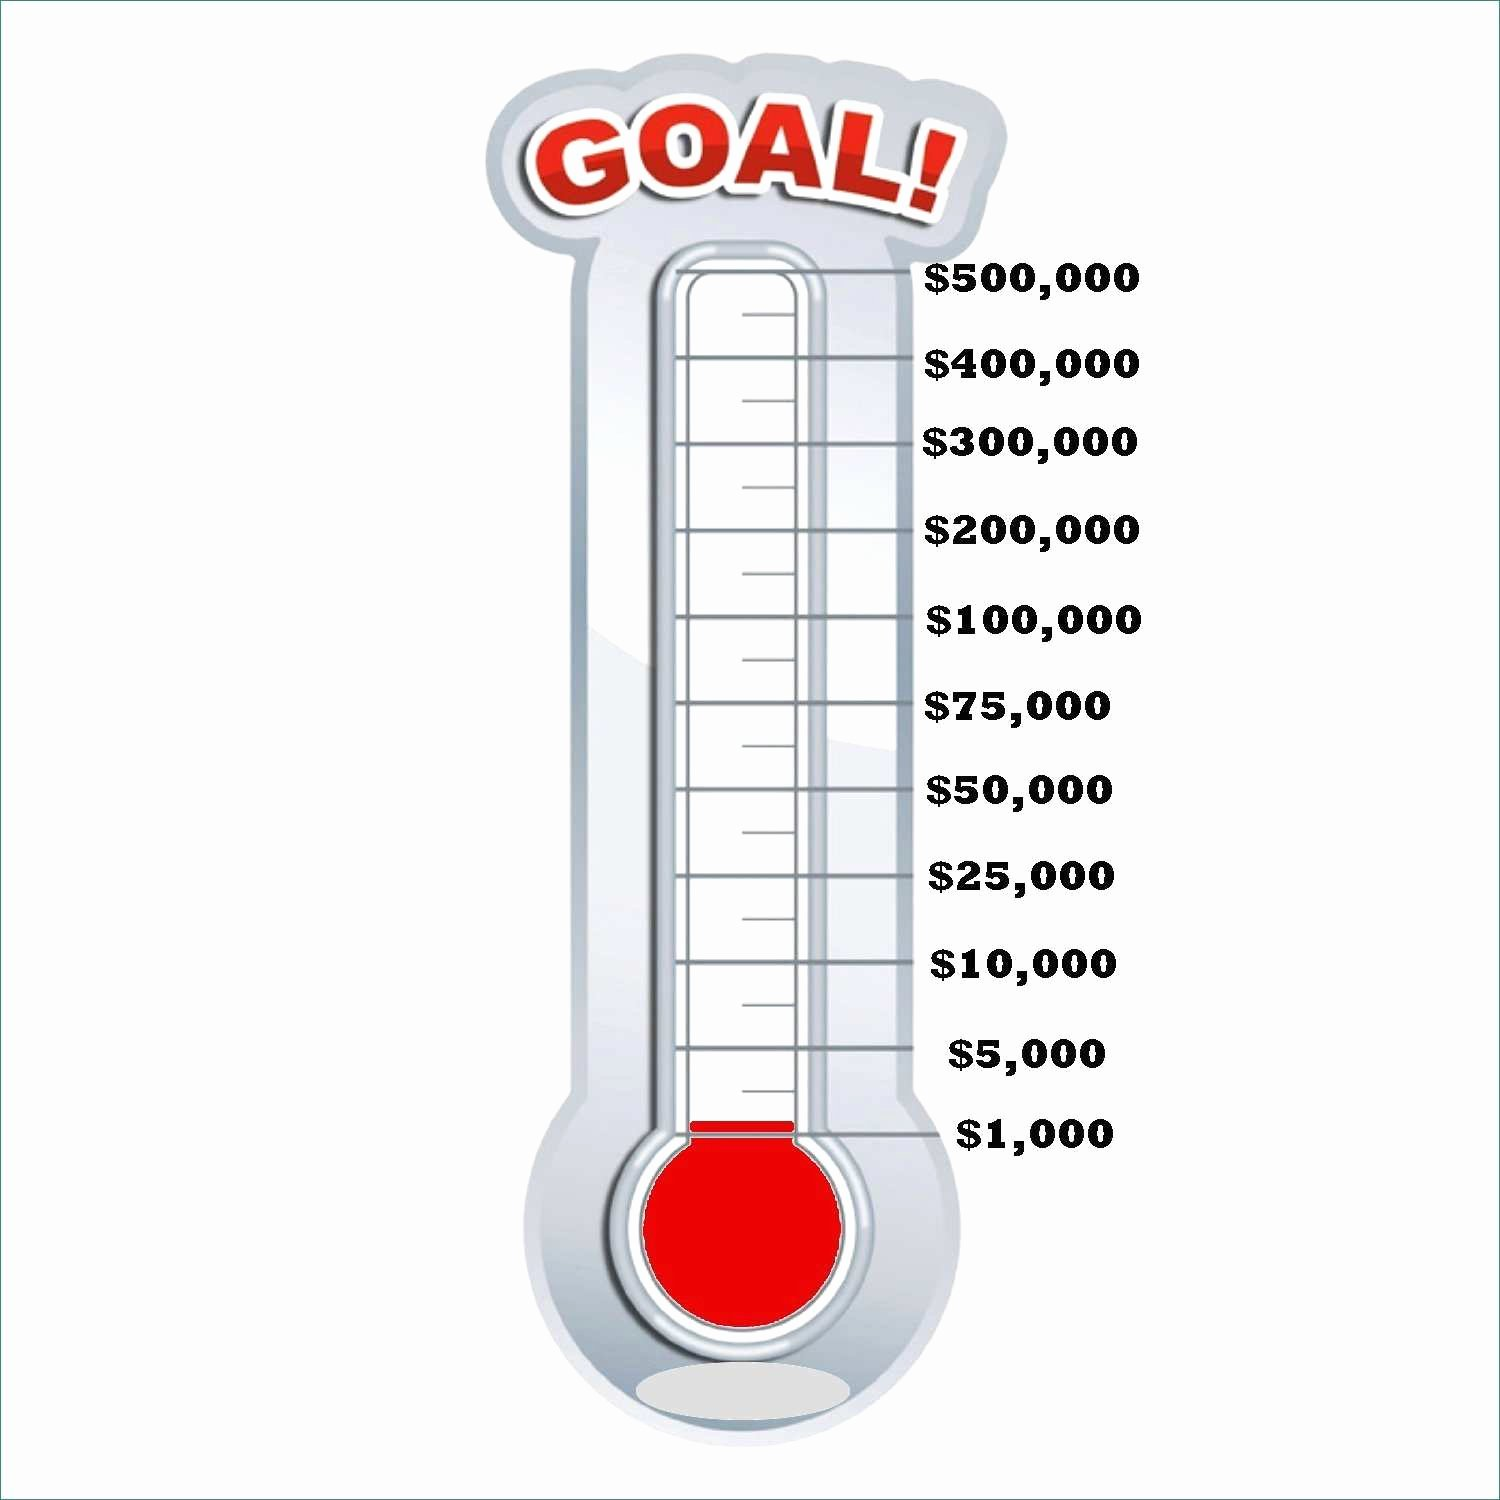 Fundraising thermometer Template Powerpoint Luxury Goal thermometer Template Professional Chart Excel